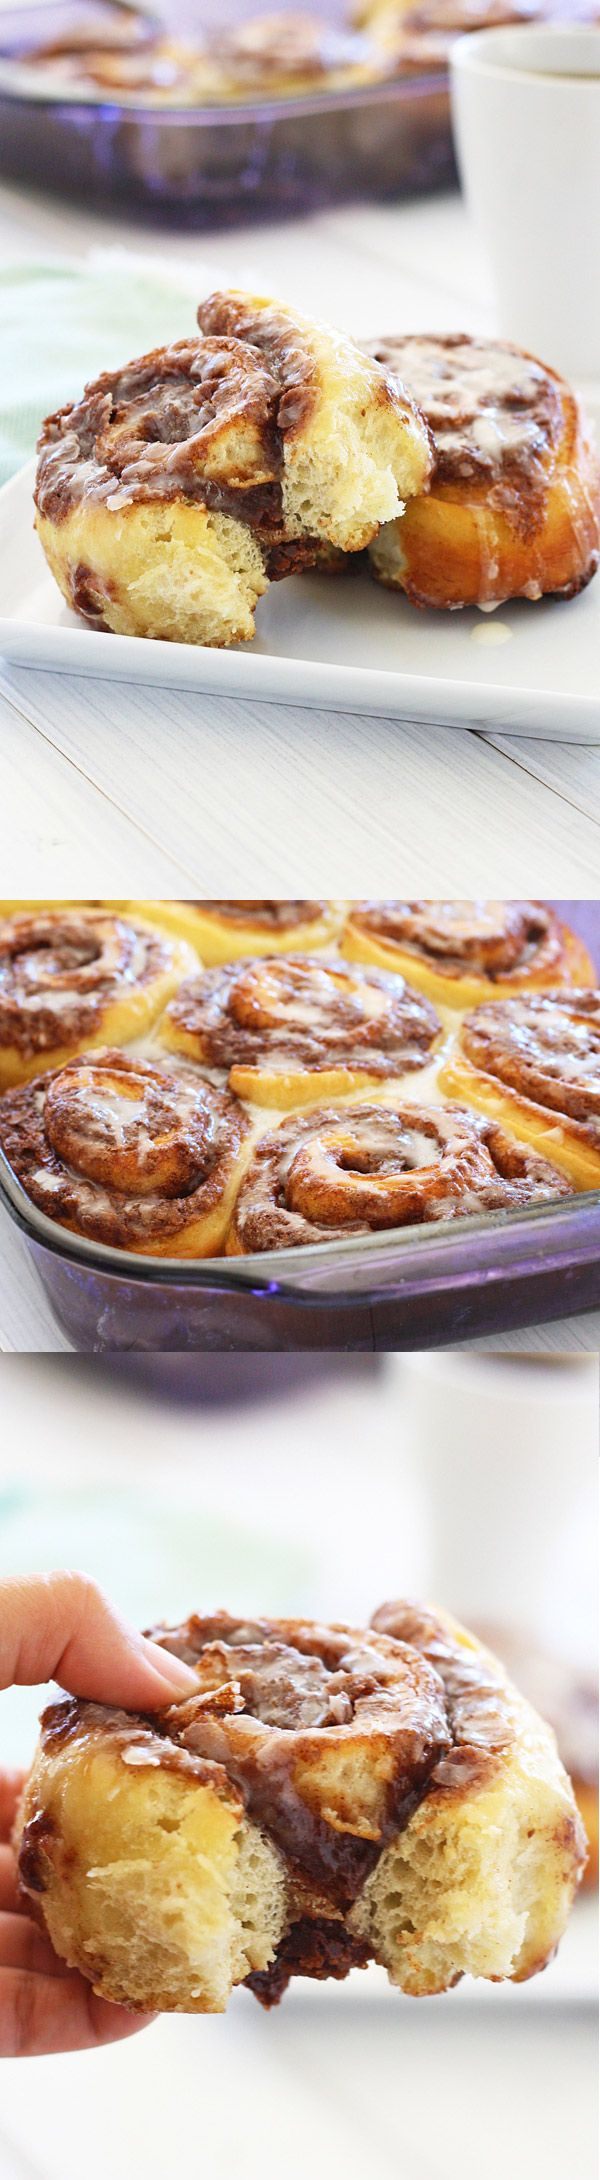 Pizza Dough Cinnamon Rolls – The easiest cinnamon rolls recipe EVER made with store-bought pizza dough. Great recipe for busy moms! | rasamalaysia.com